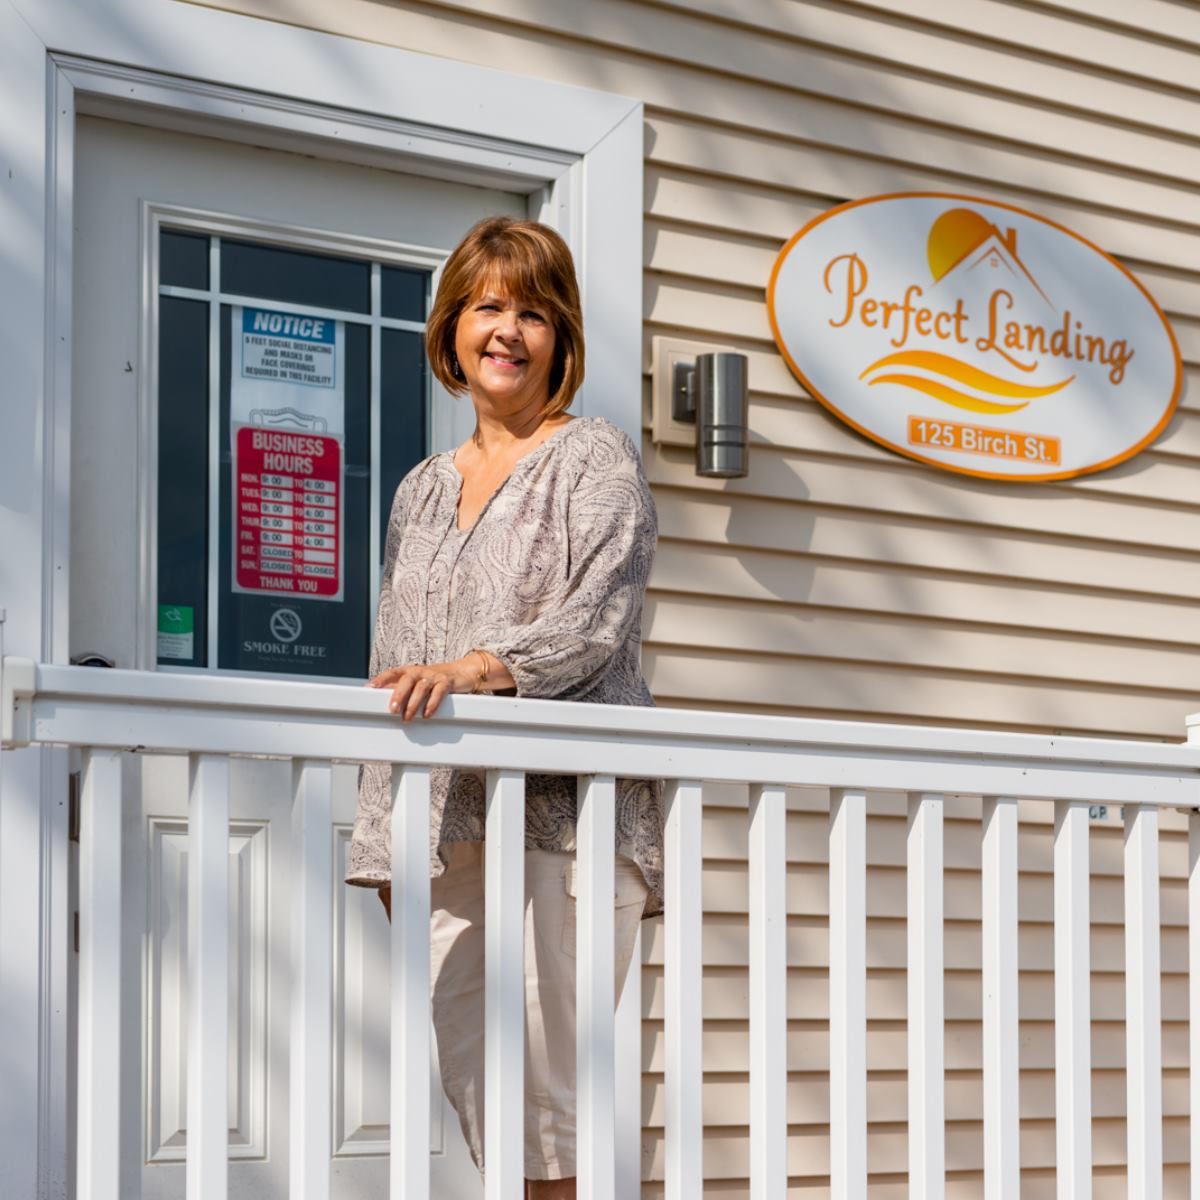 Perfect Landing Rentals Real Estate Property Management Company Office in Tawas City Michigan